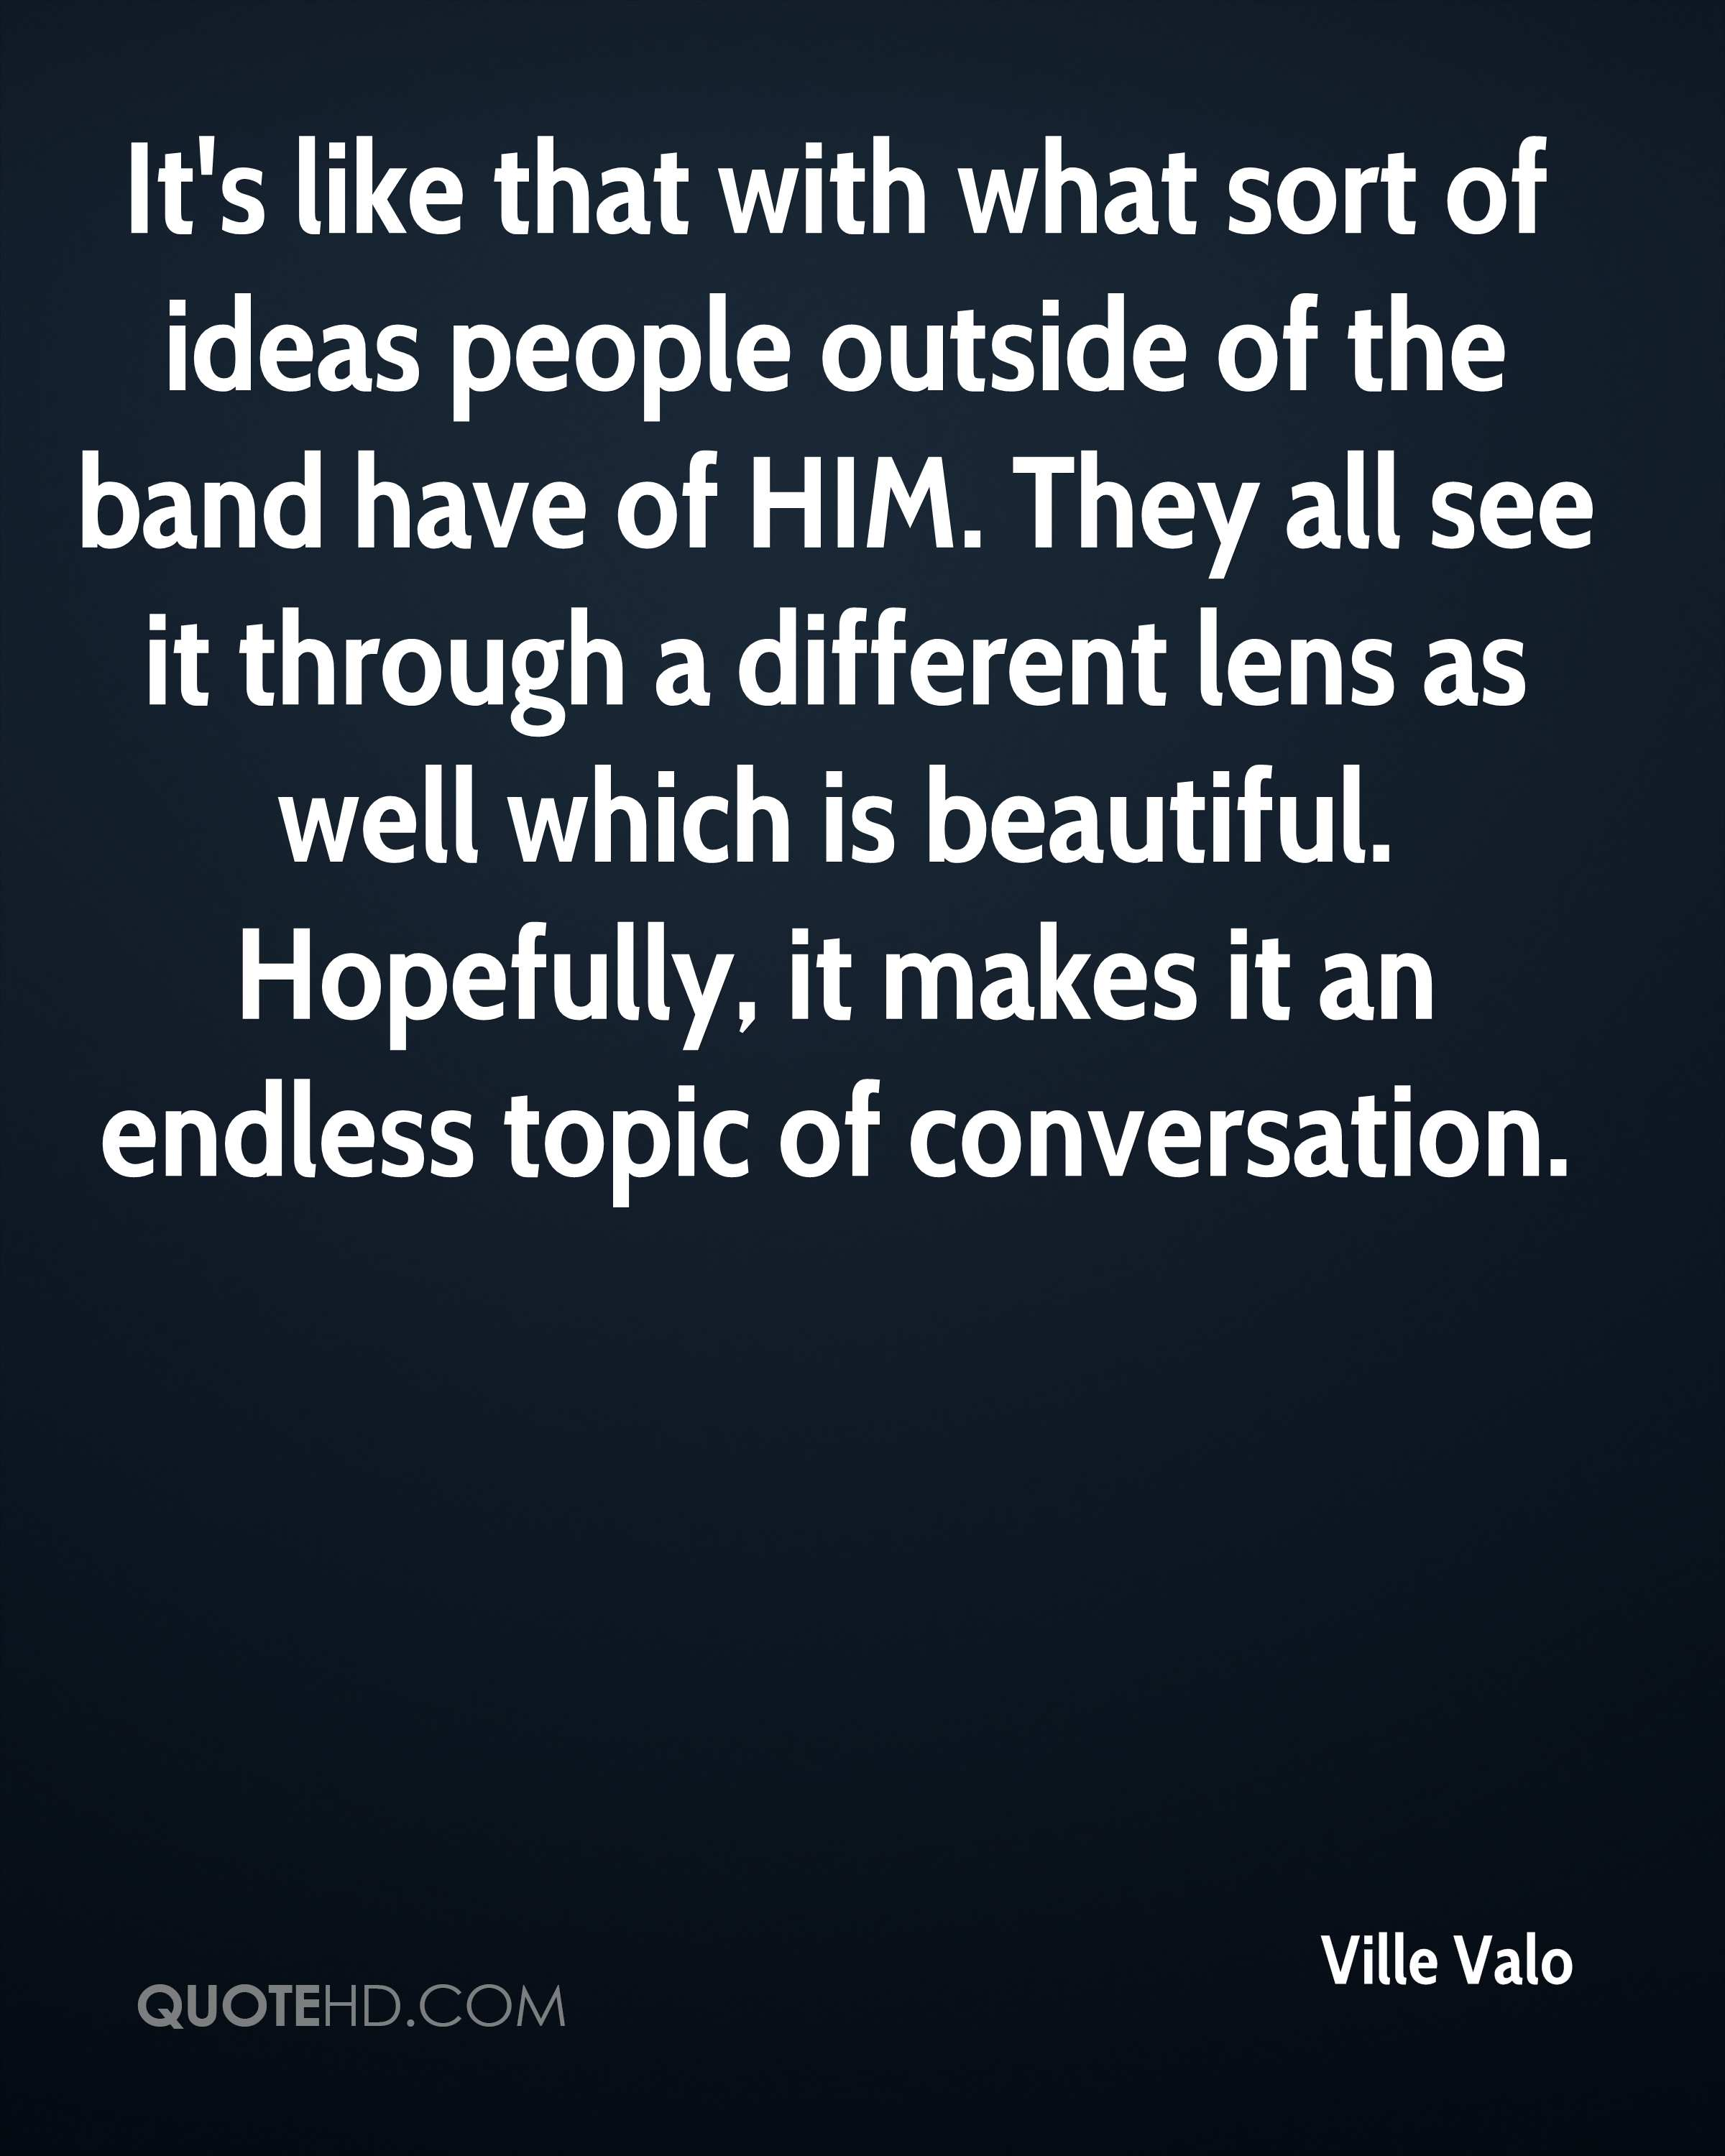 It's like that with what sort of ideas people outside of the band have of HIM. They all see it through a different lens as well which is beautiful. Hopefully, it makes it an endless topic of conversation.